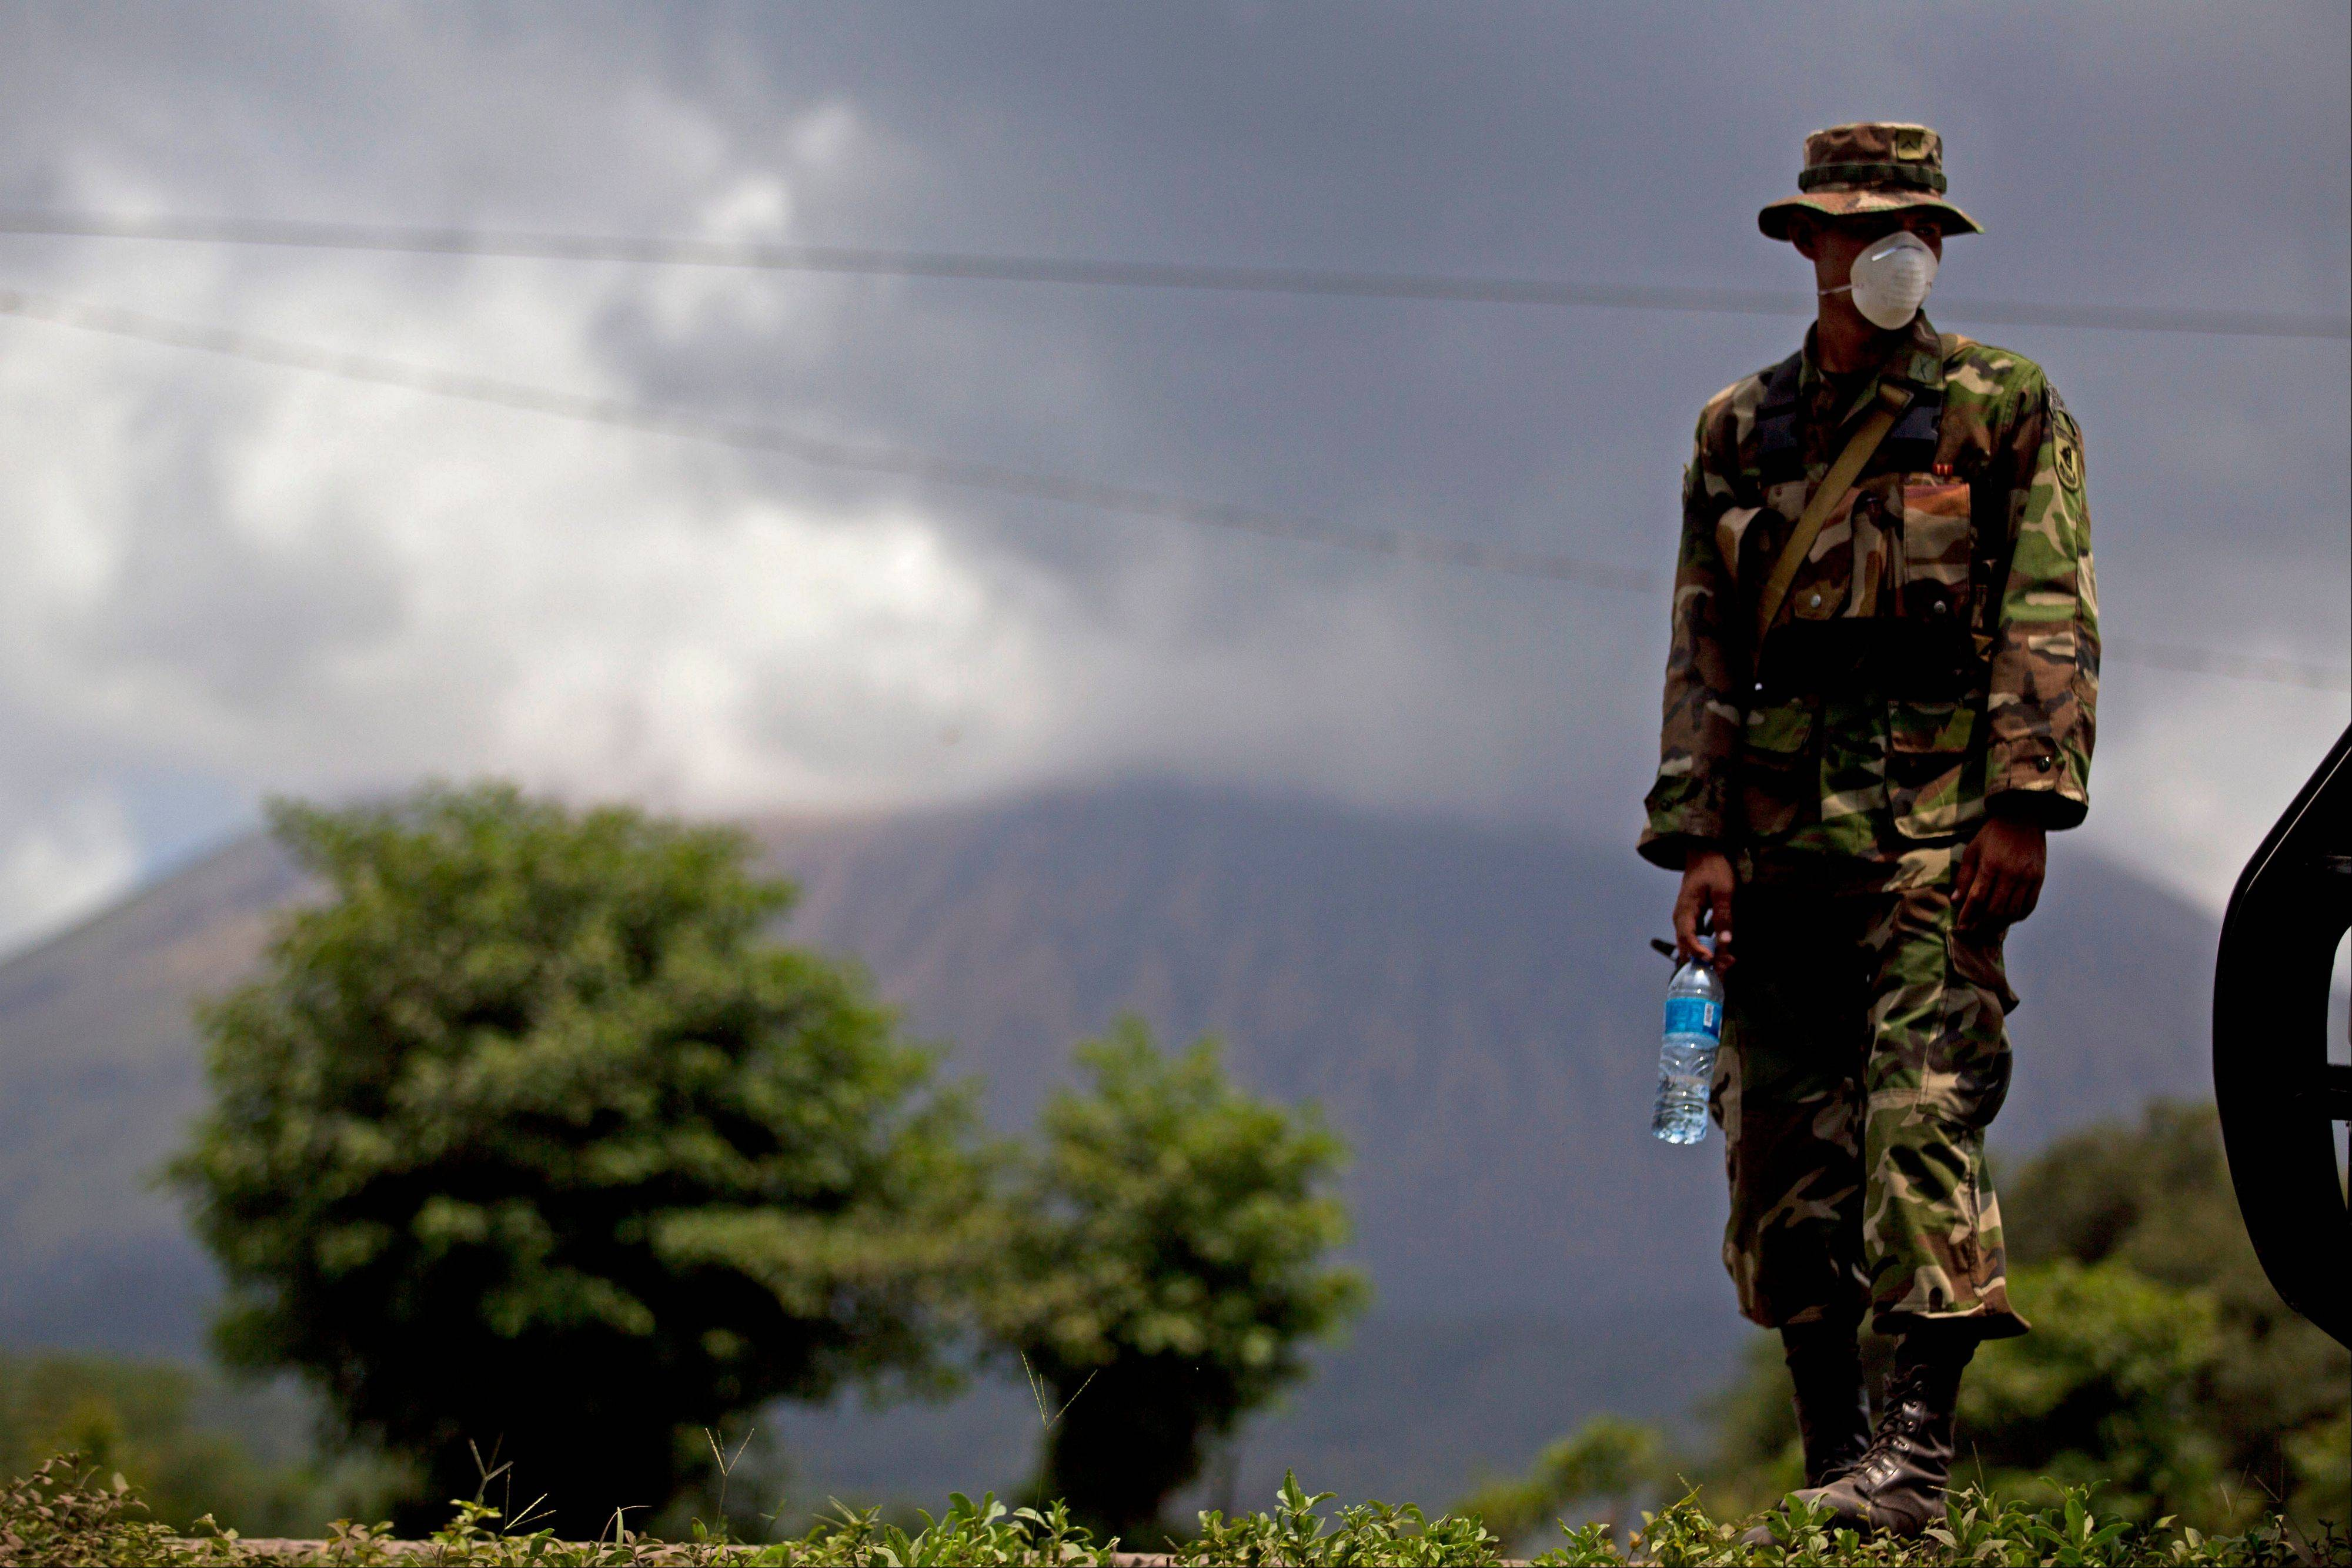 A Nicaraguan soldier wears a protective mask Saturday as the San Cristobal volcano, in background, spews smoke and ash, near Chinandega, Nicaragua.